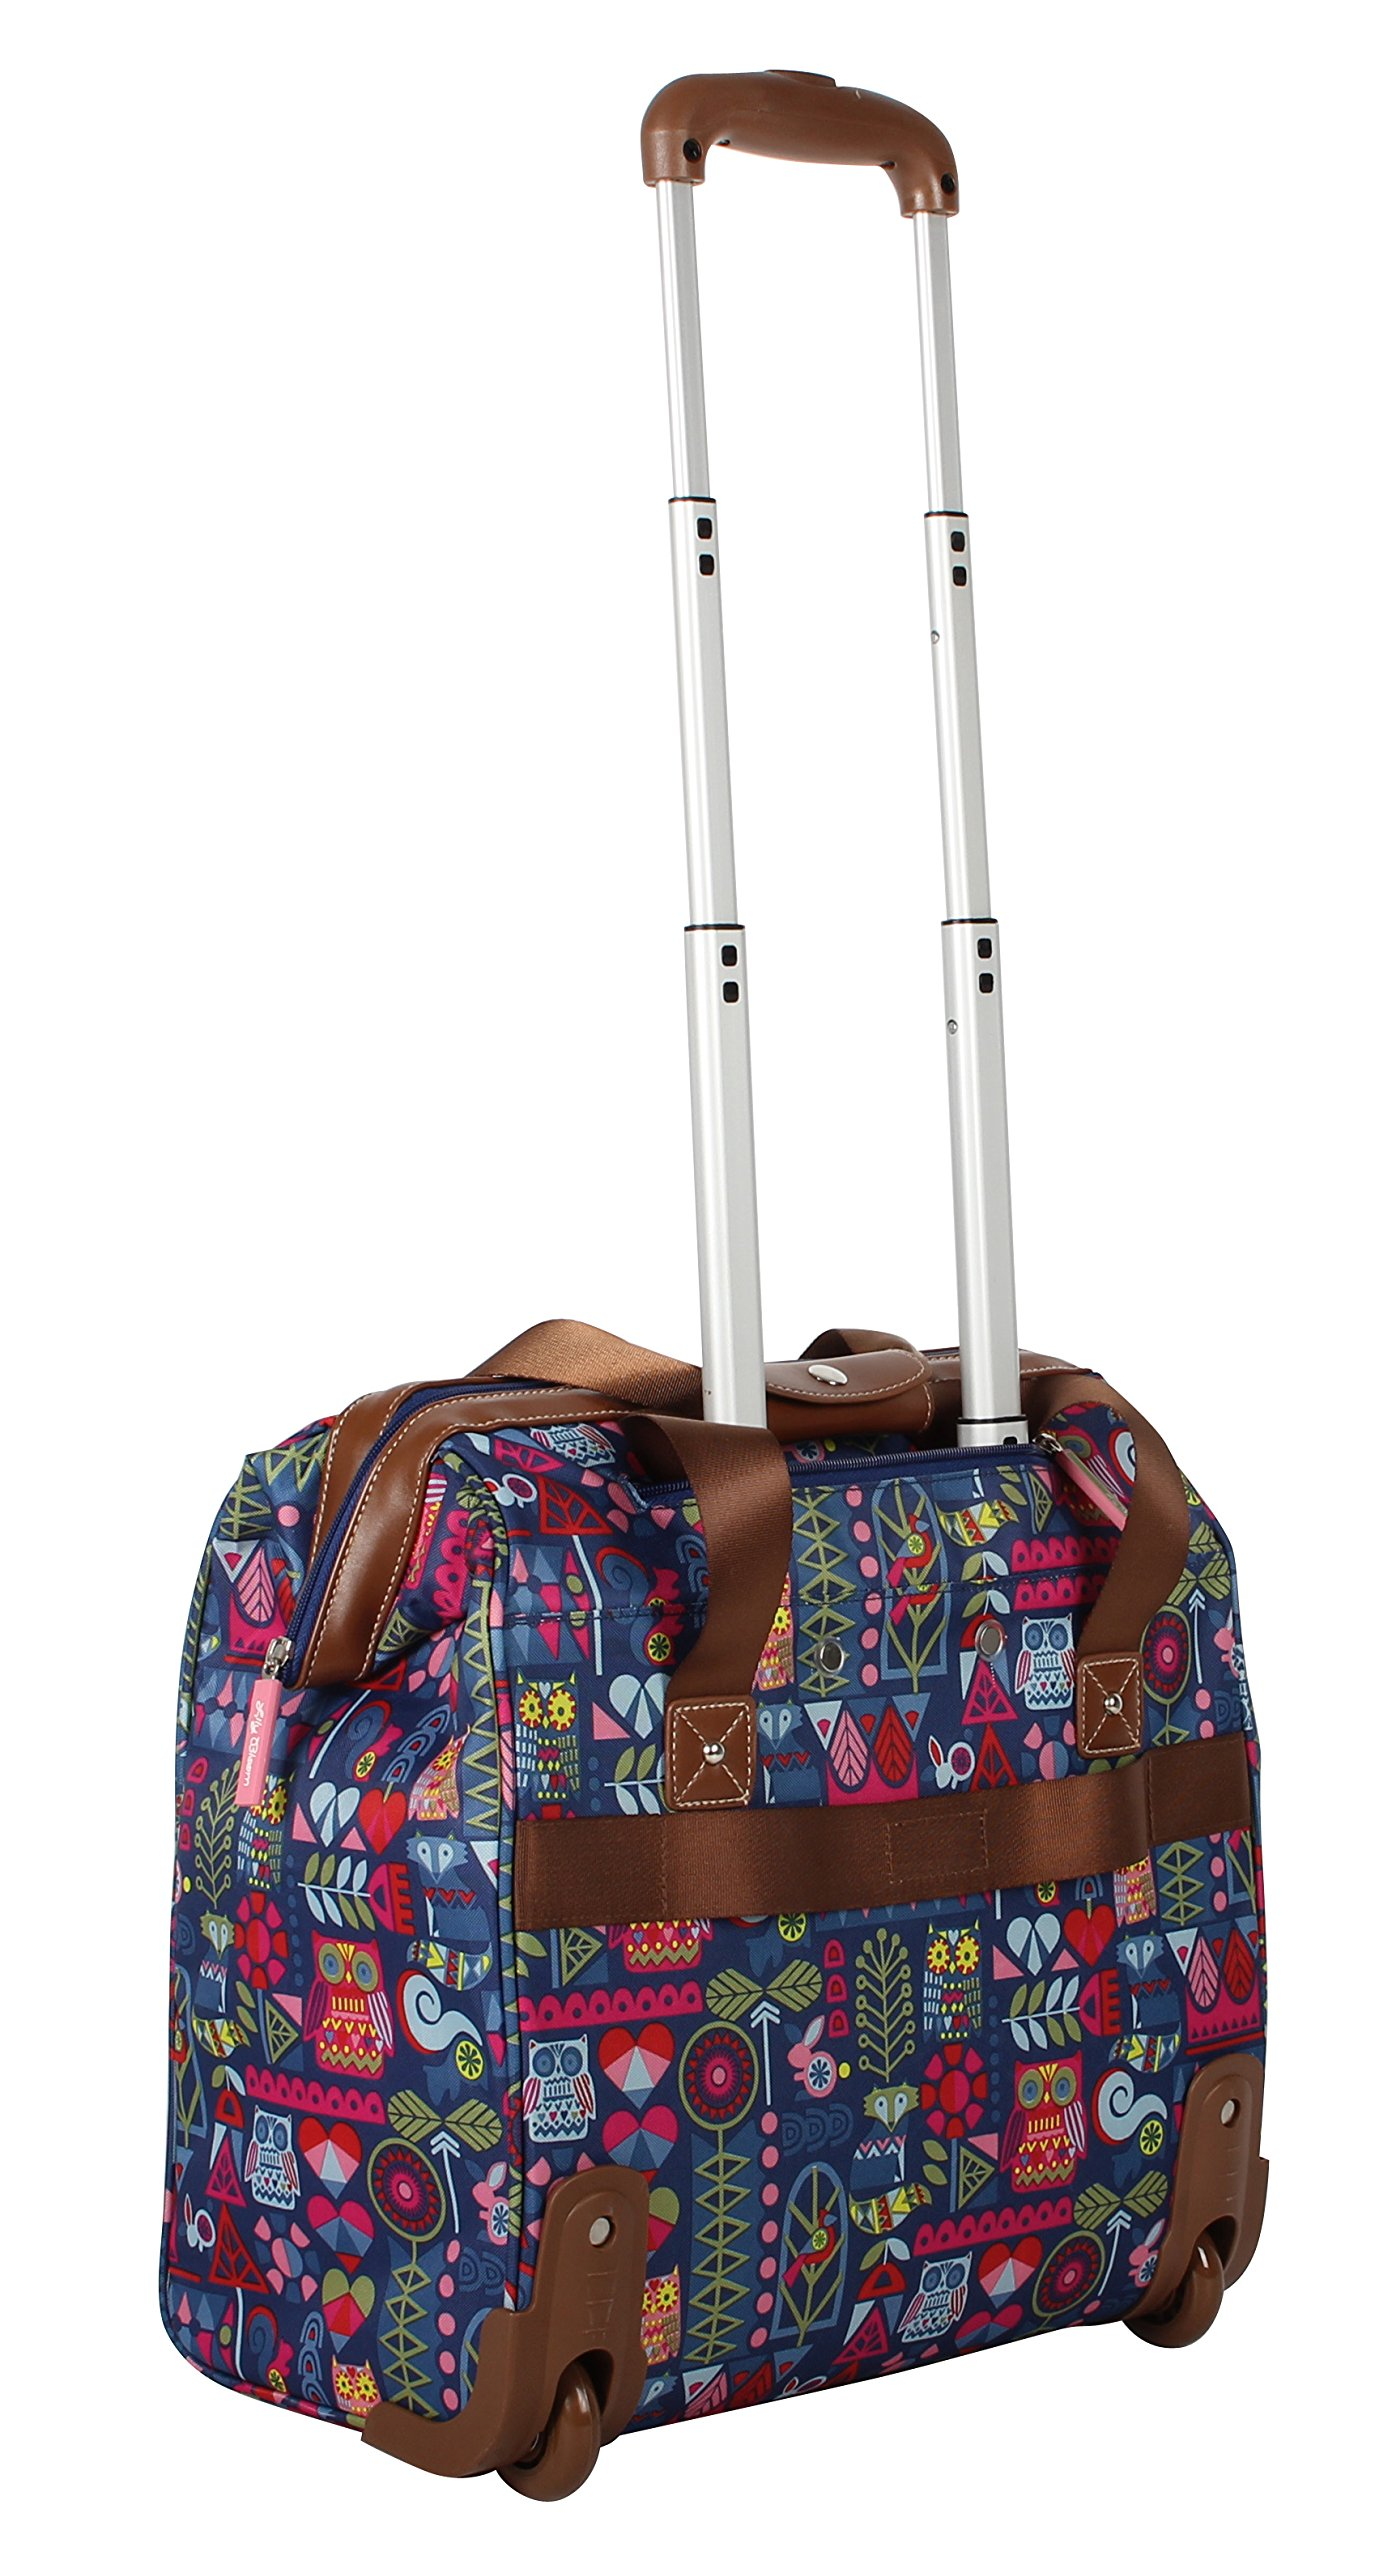 Lily Bloom Luggage 3 Piece Softside Spinner Suitcase Set Collection (Geo Critter) by Lily Bloom (Image #6)